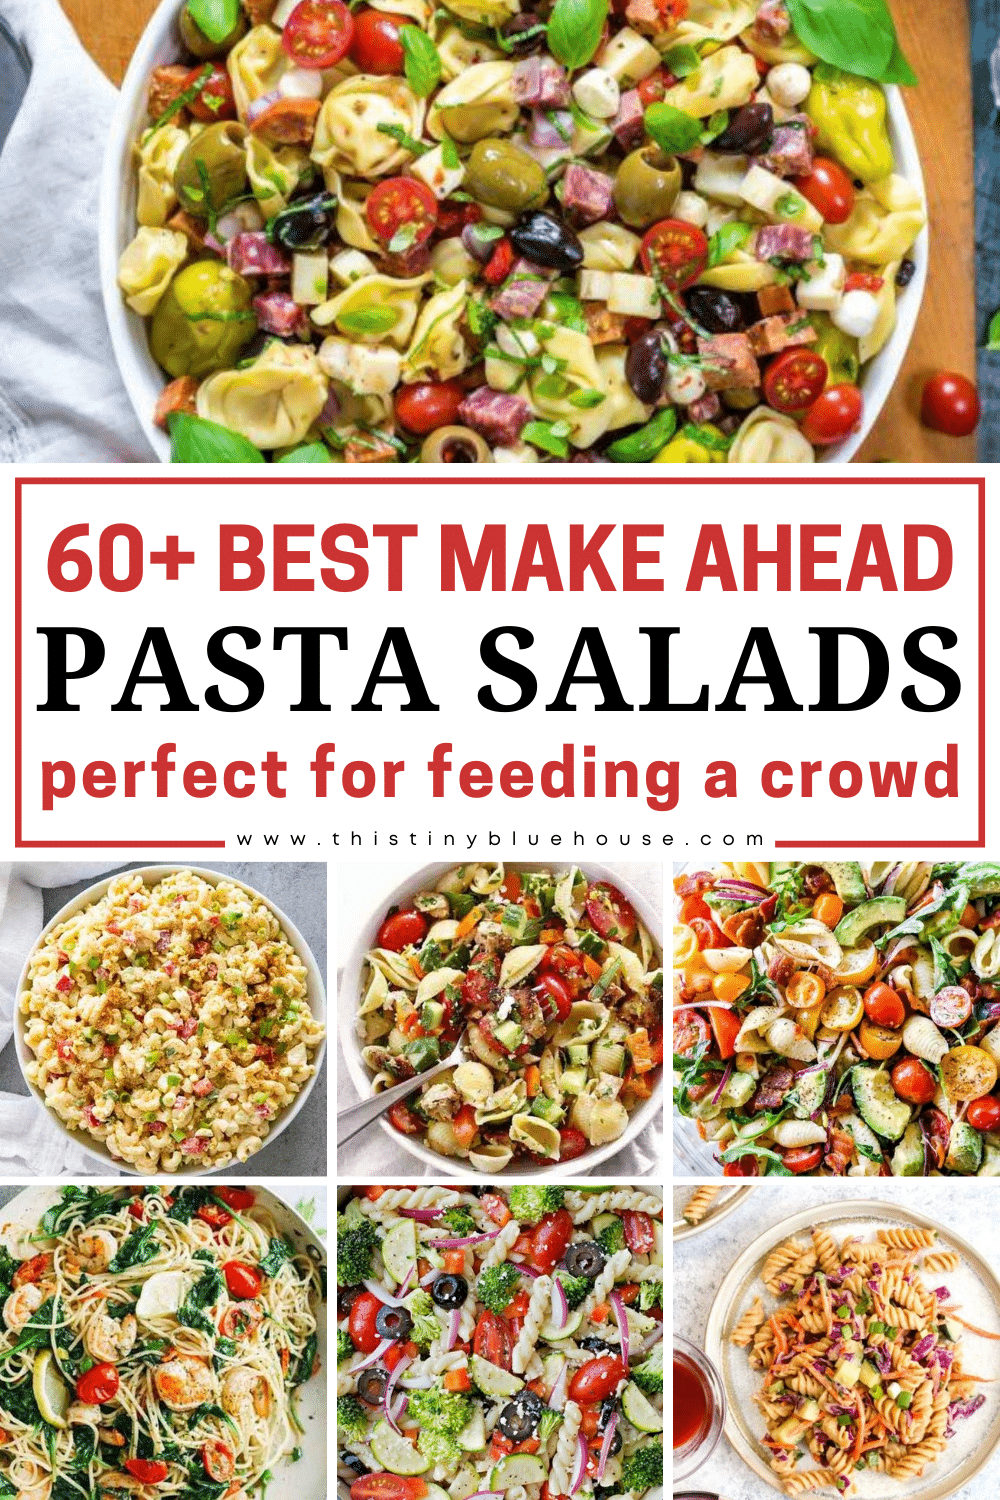 60+ Best Make Ahead Pasta Salads Perfect For Feeding A Crowd